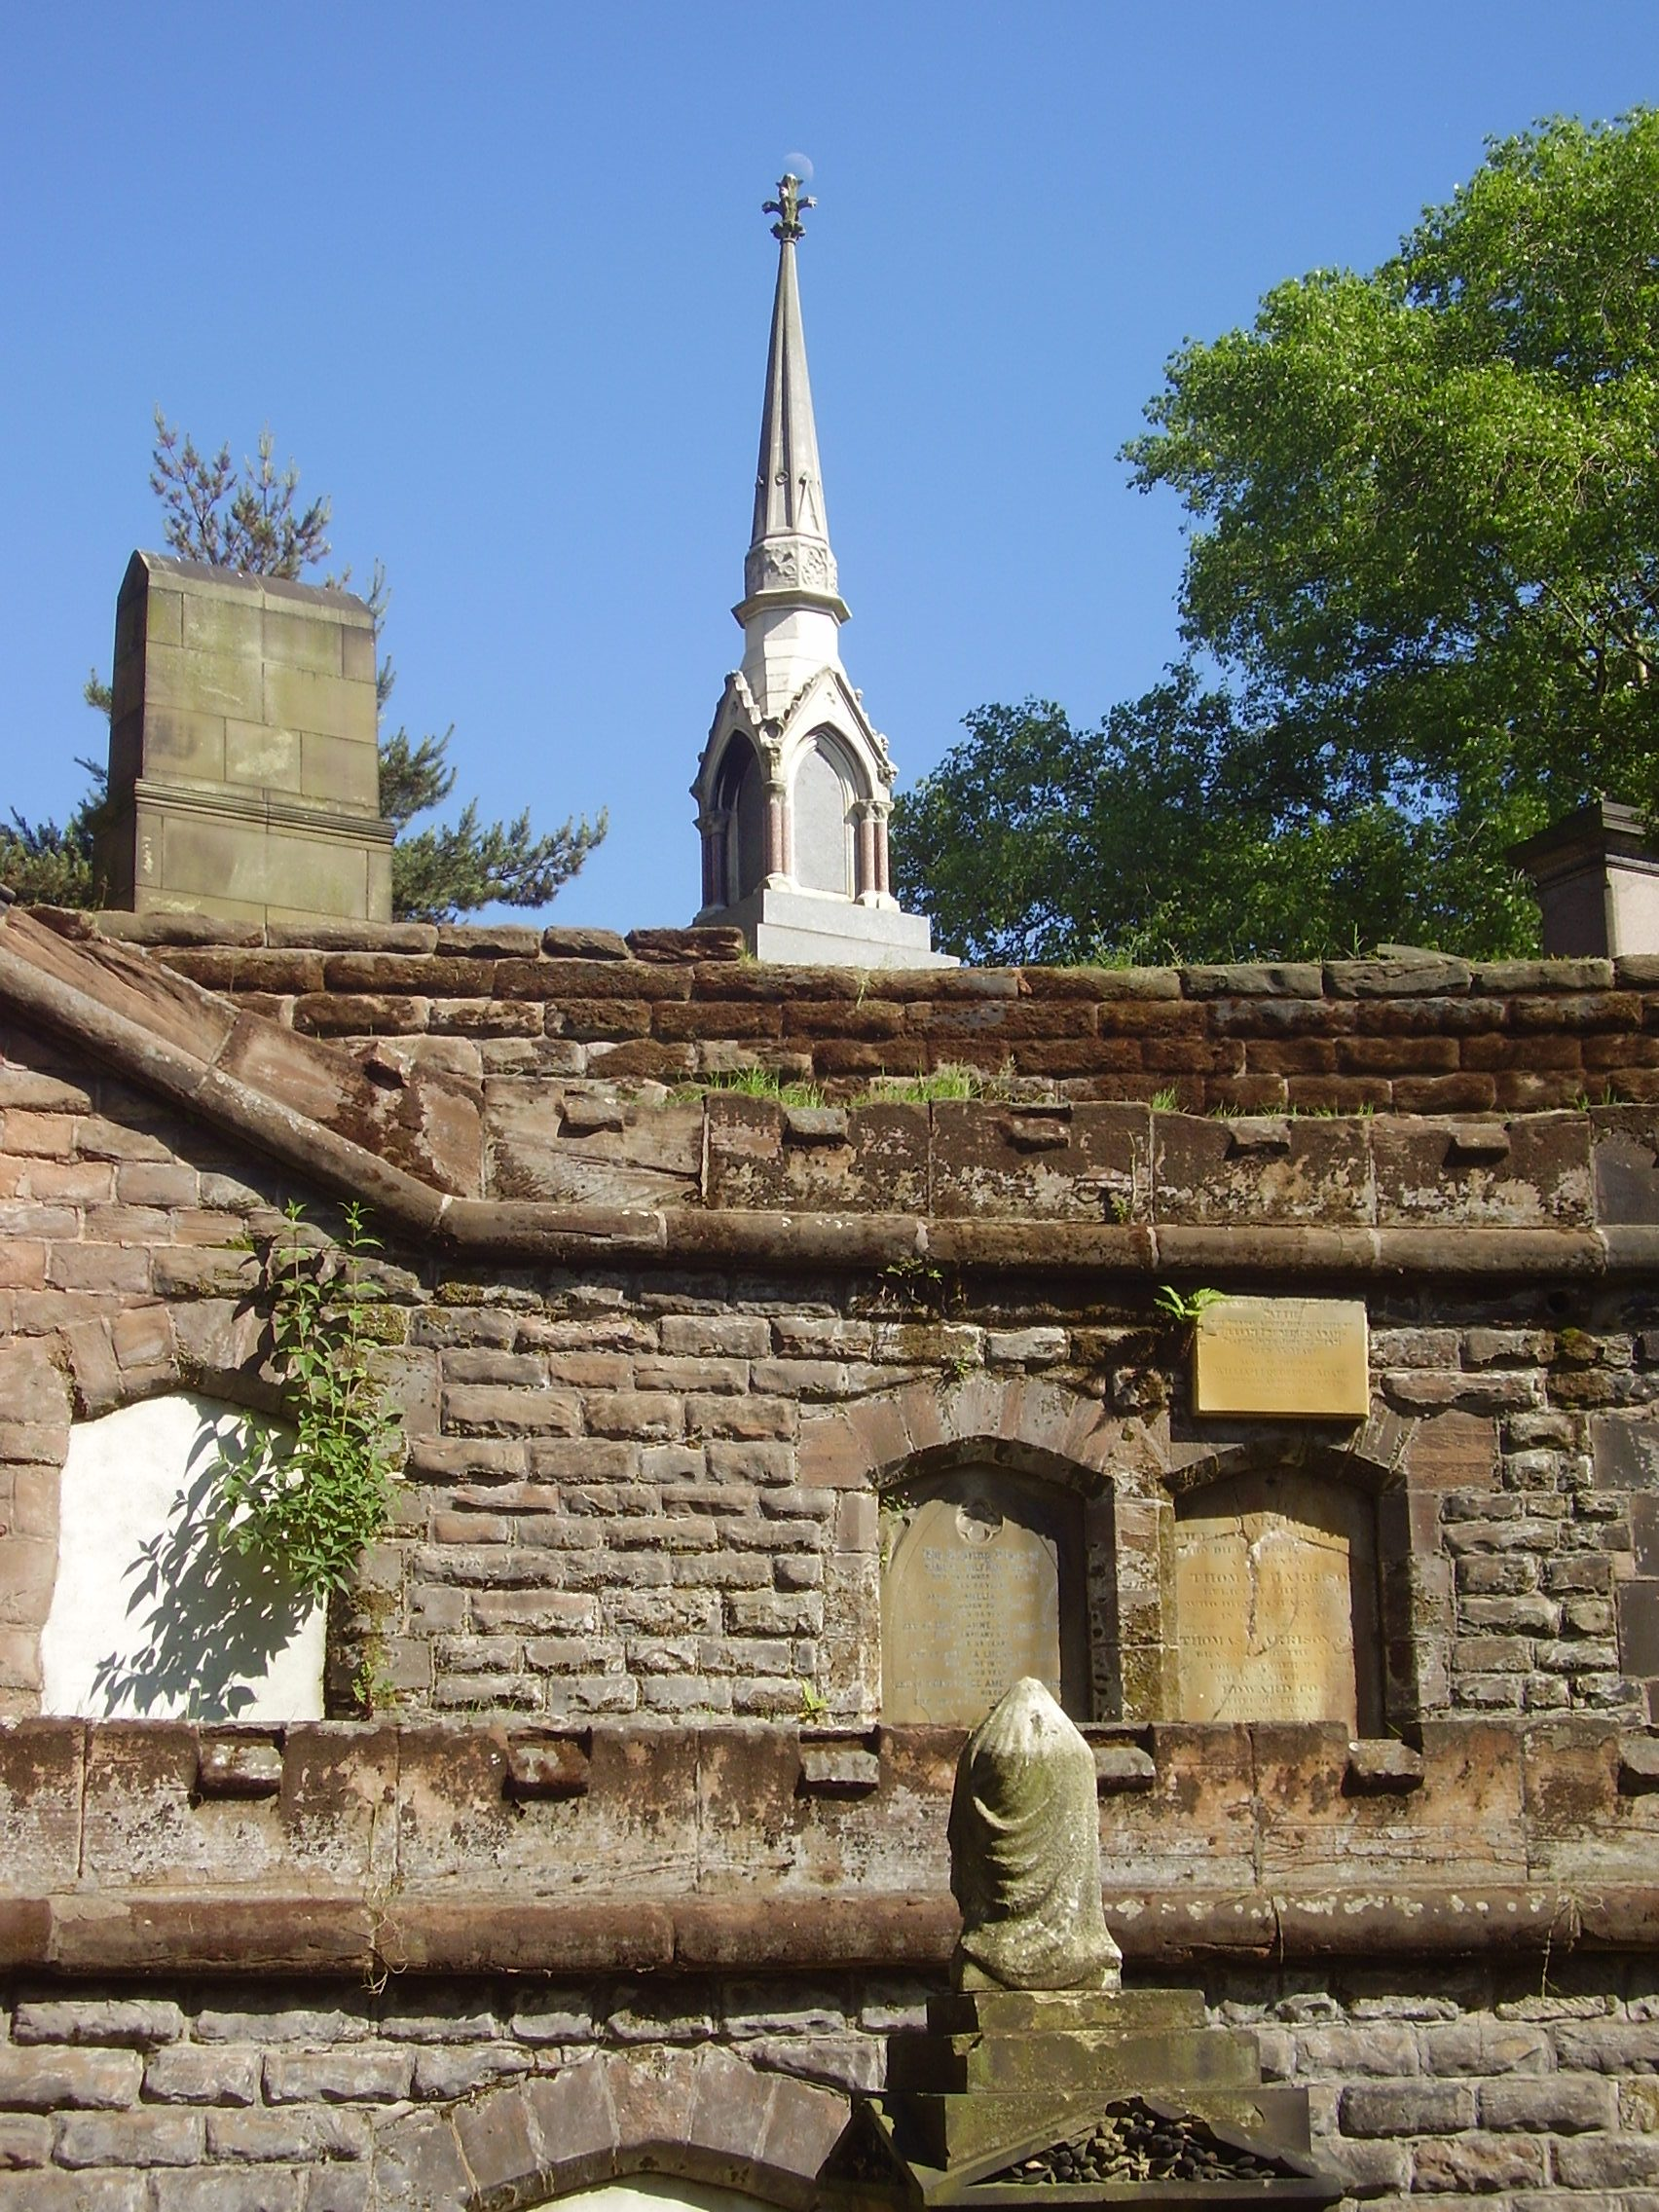 Warstone Lane Cemetery, also called Brookfields Cemetery, Church of England Cemetery, or Mint Cemetery 2008